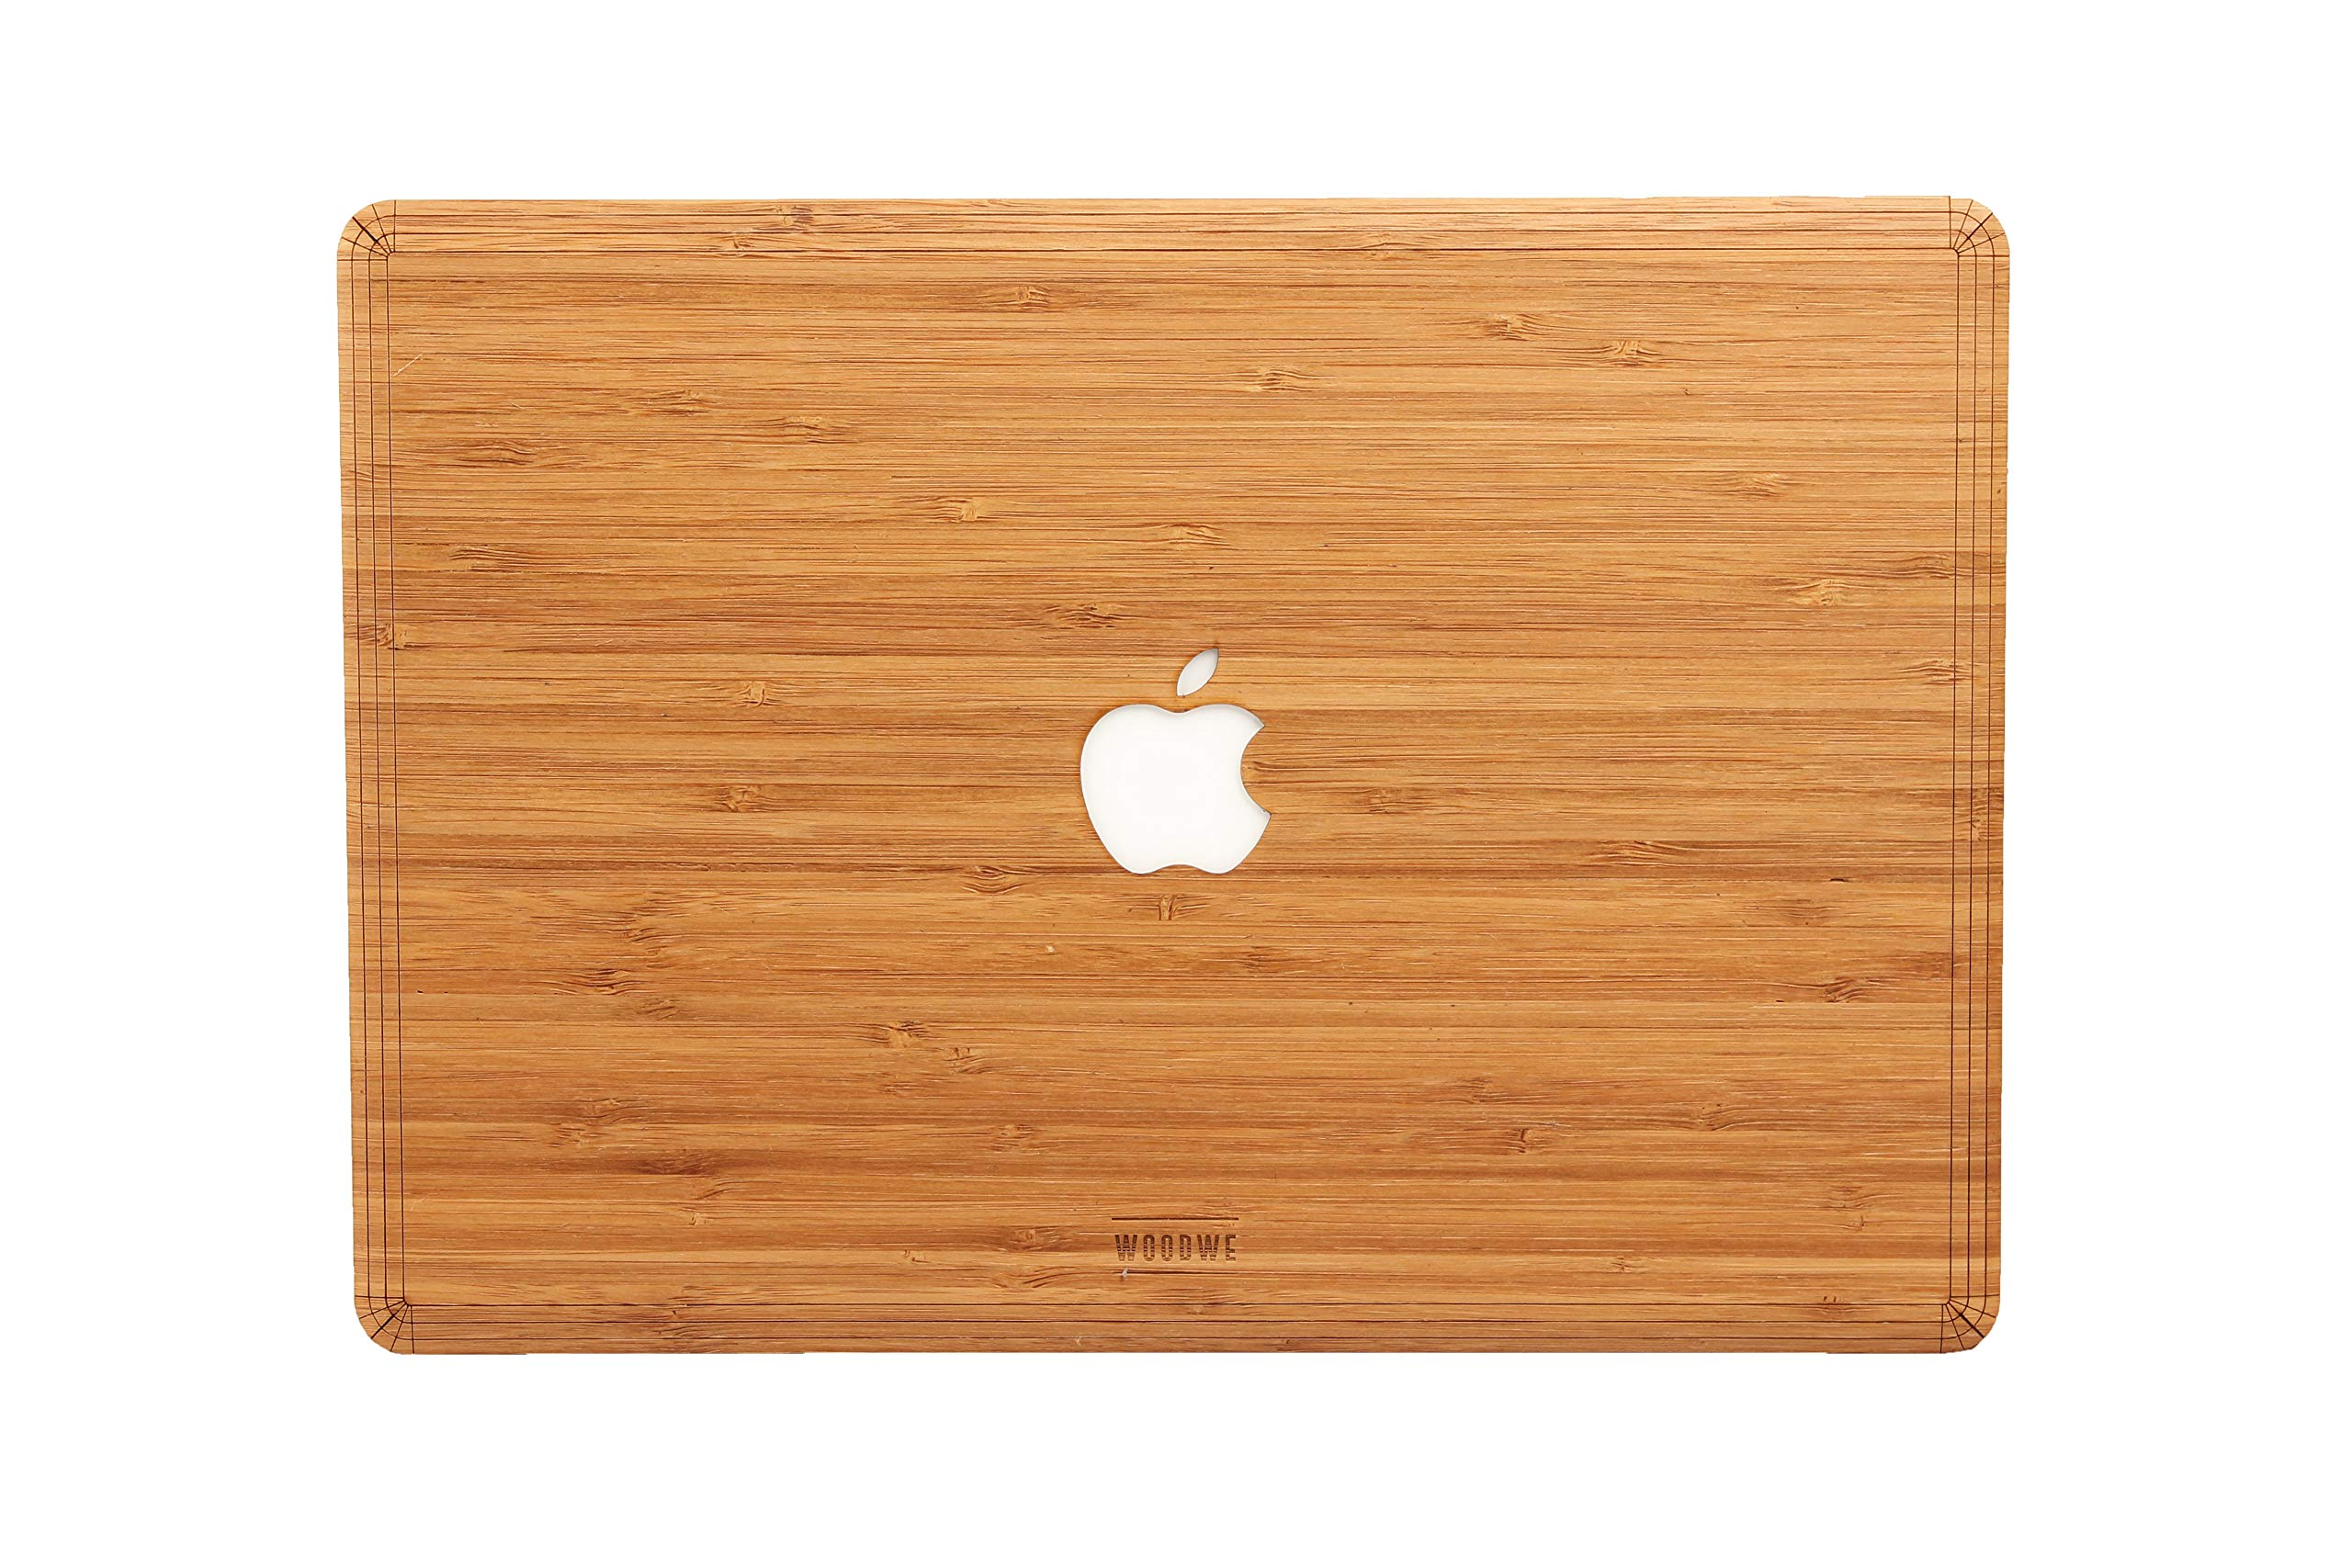 "WOODWE Real Wood Laptop Cover Skin for MacBook pro 13"" inch Retina Display 